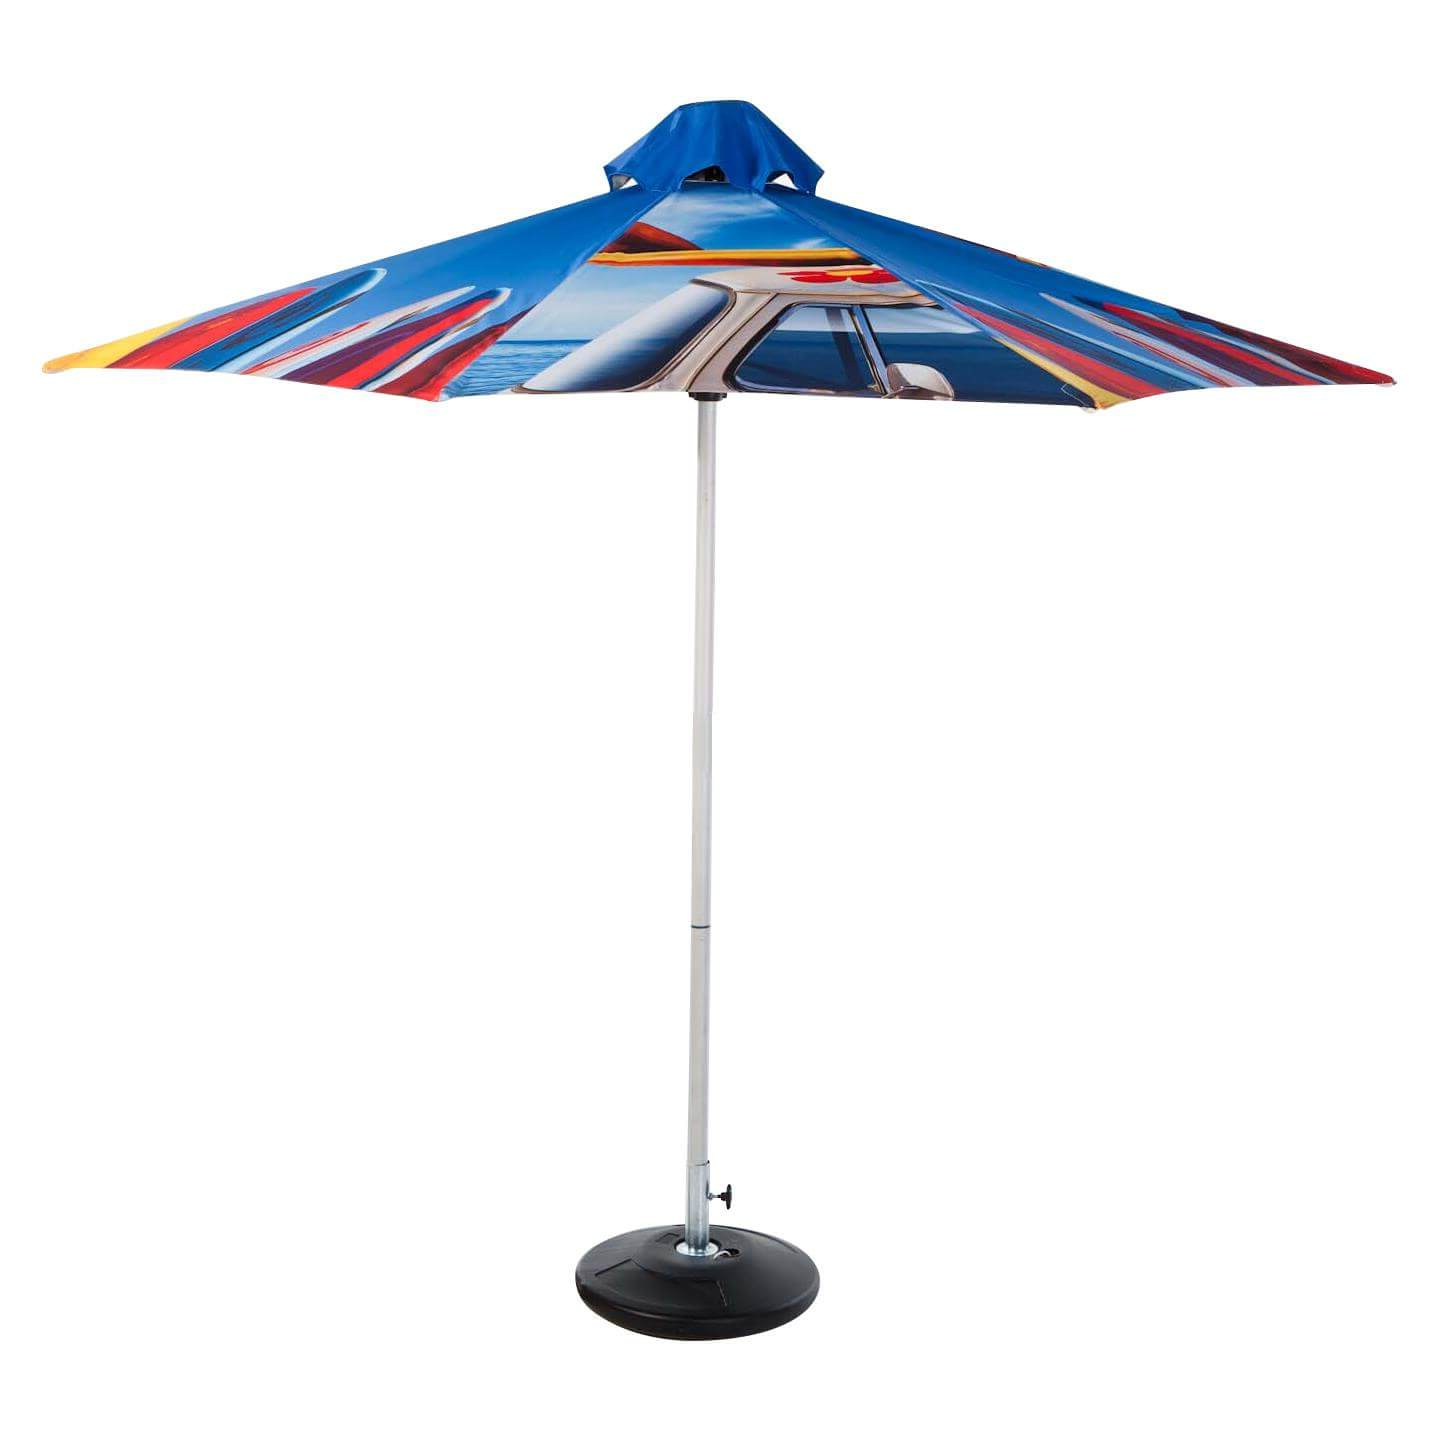 Widely Used Market Umbrellas For Market Umbrellas – Zodiac Event Displays (View 11 of 20)